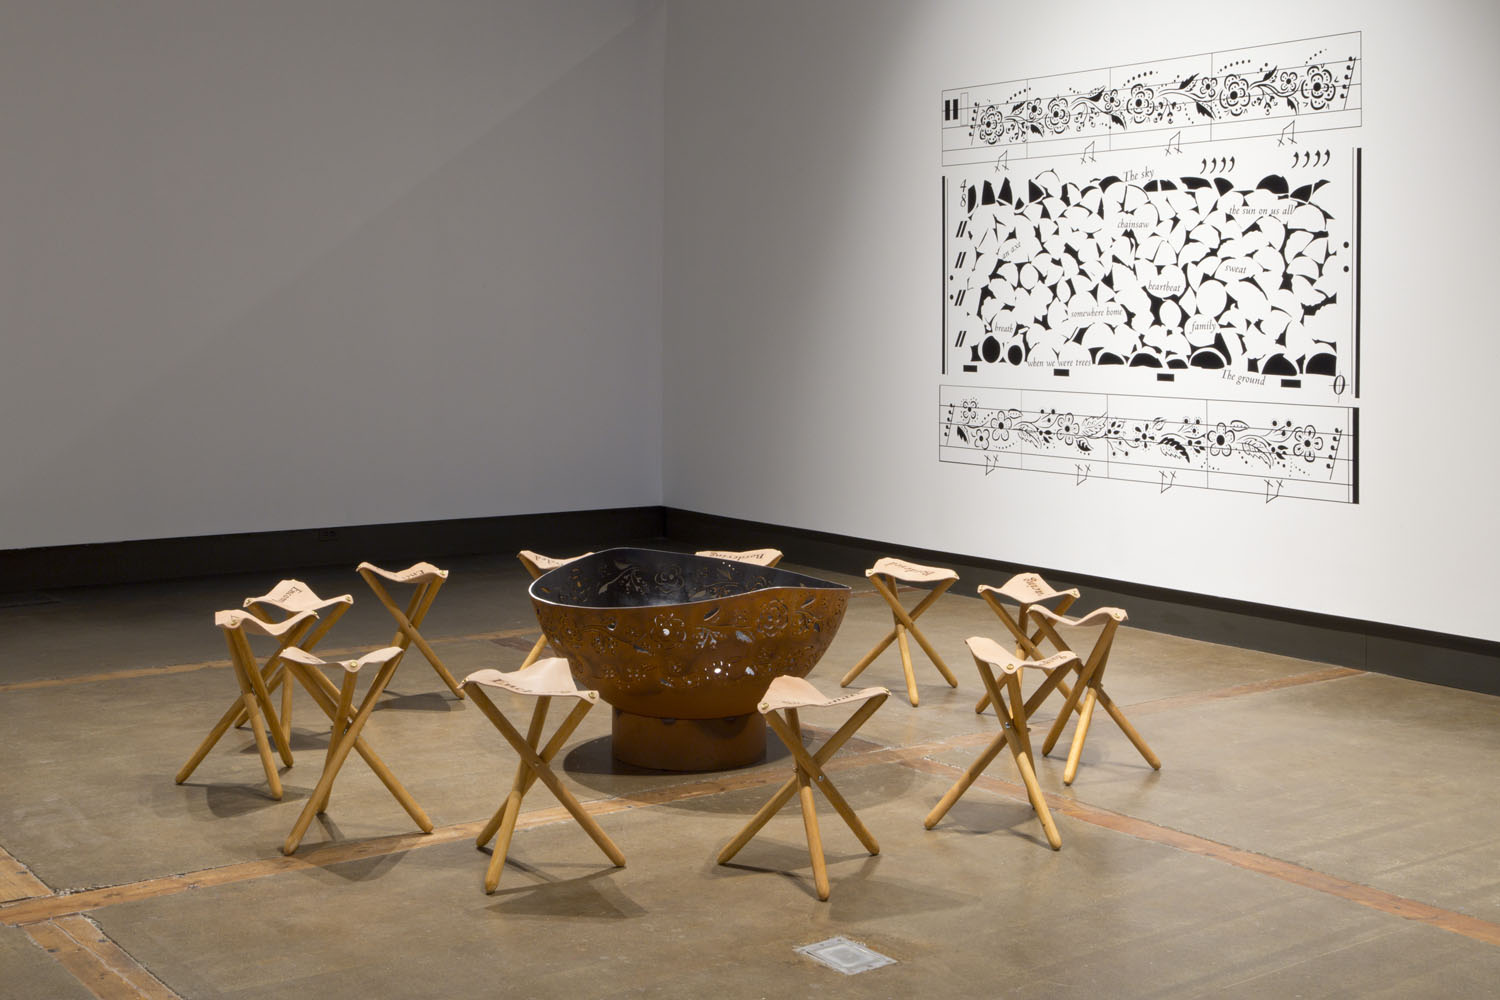 Installation view of Surrounded/Surrounding, a circular arrangement of leather stools around a copper fire bowl etched with a floral pattern, in front of a white gallery wall with a black vinyl transfer of a large pattern of shapes and text